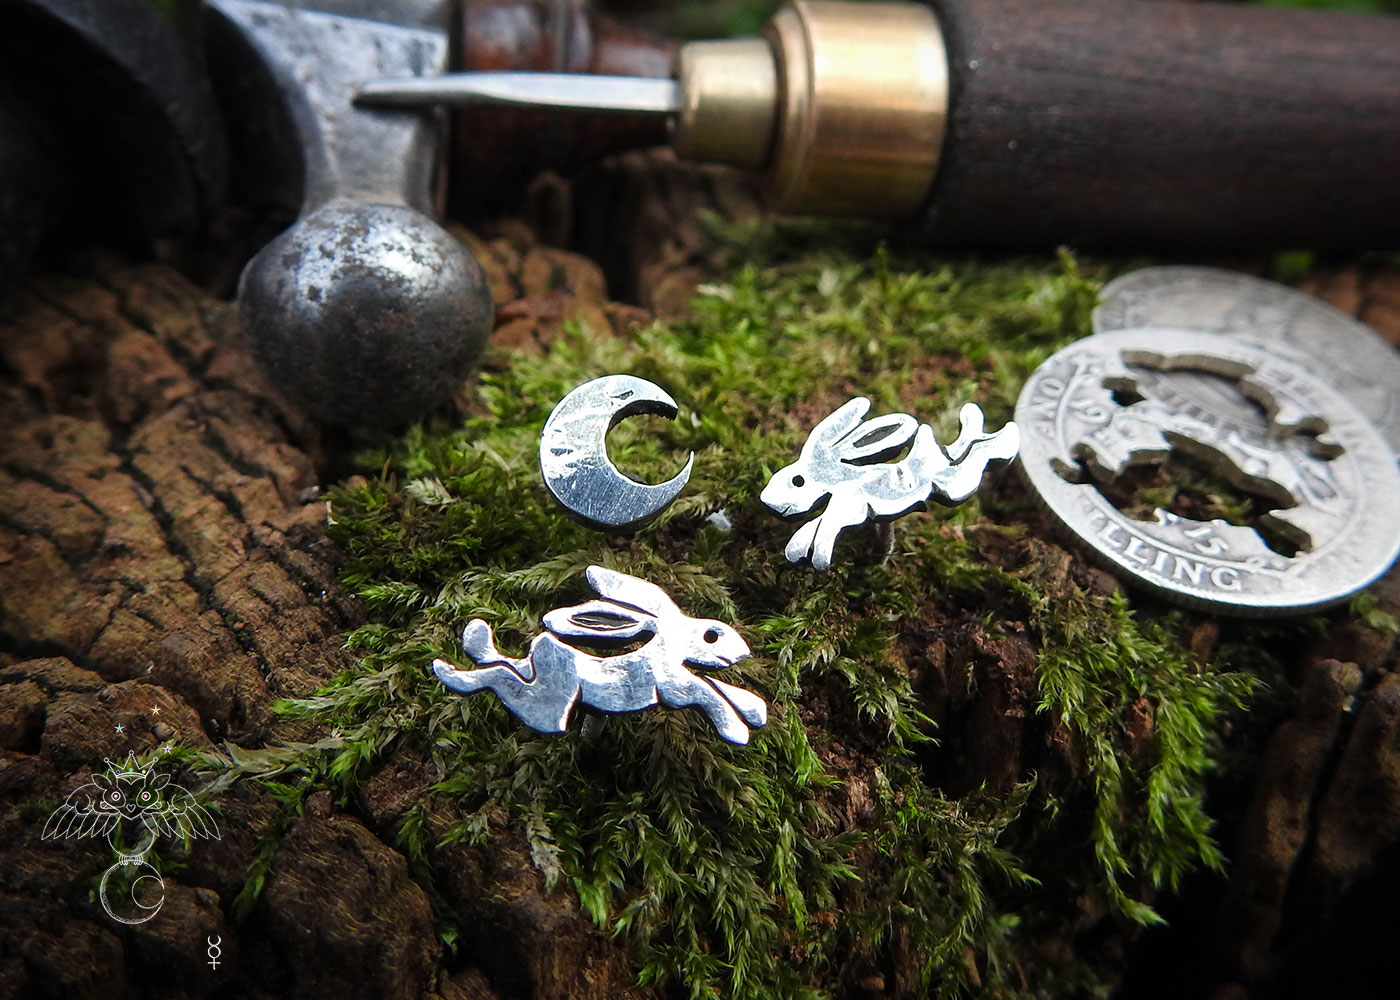 Magical hare earrings - handmade and recycled sterling silver shillings